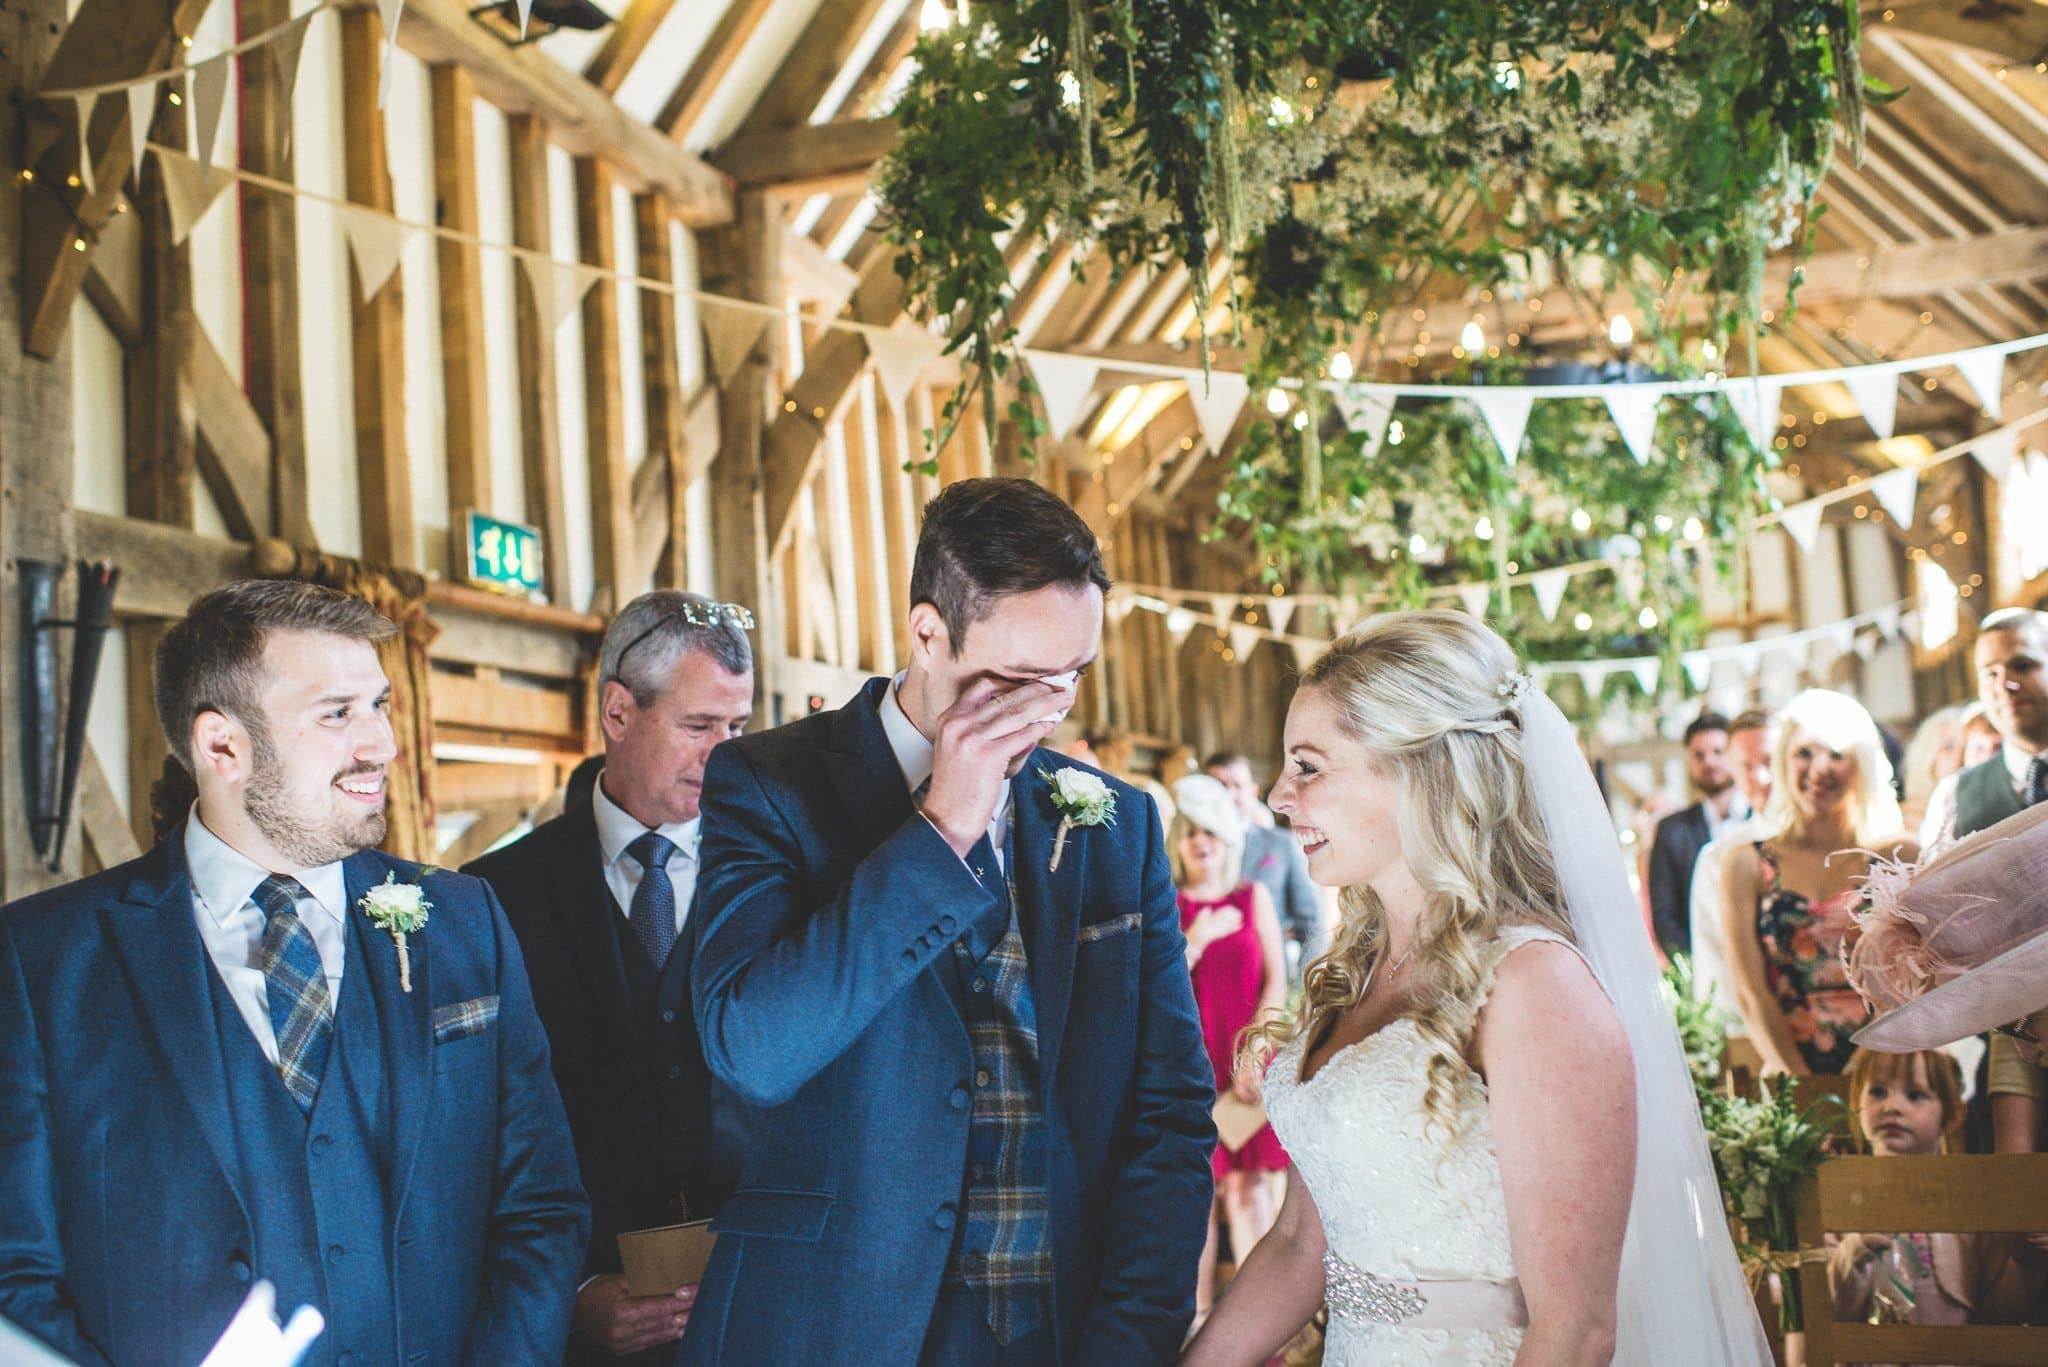 Philip gets emotional as Emma reaches him at the end of the aisle, and needs to wipe his eyes with a handkerchief